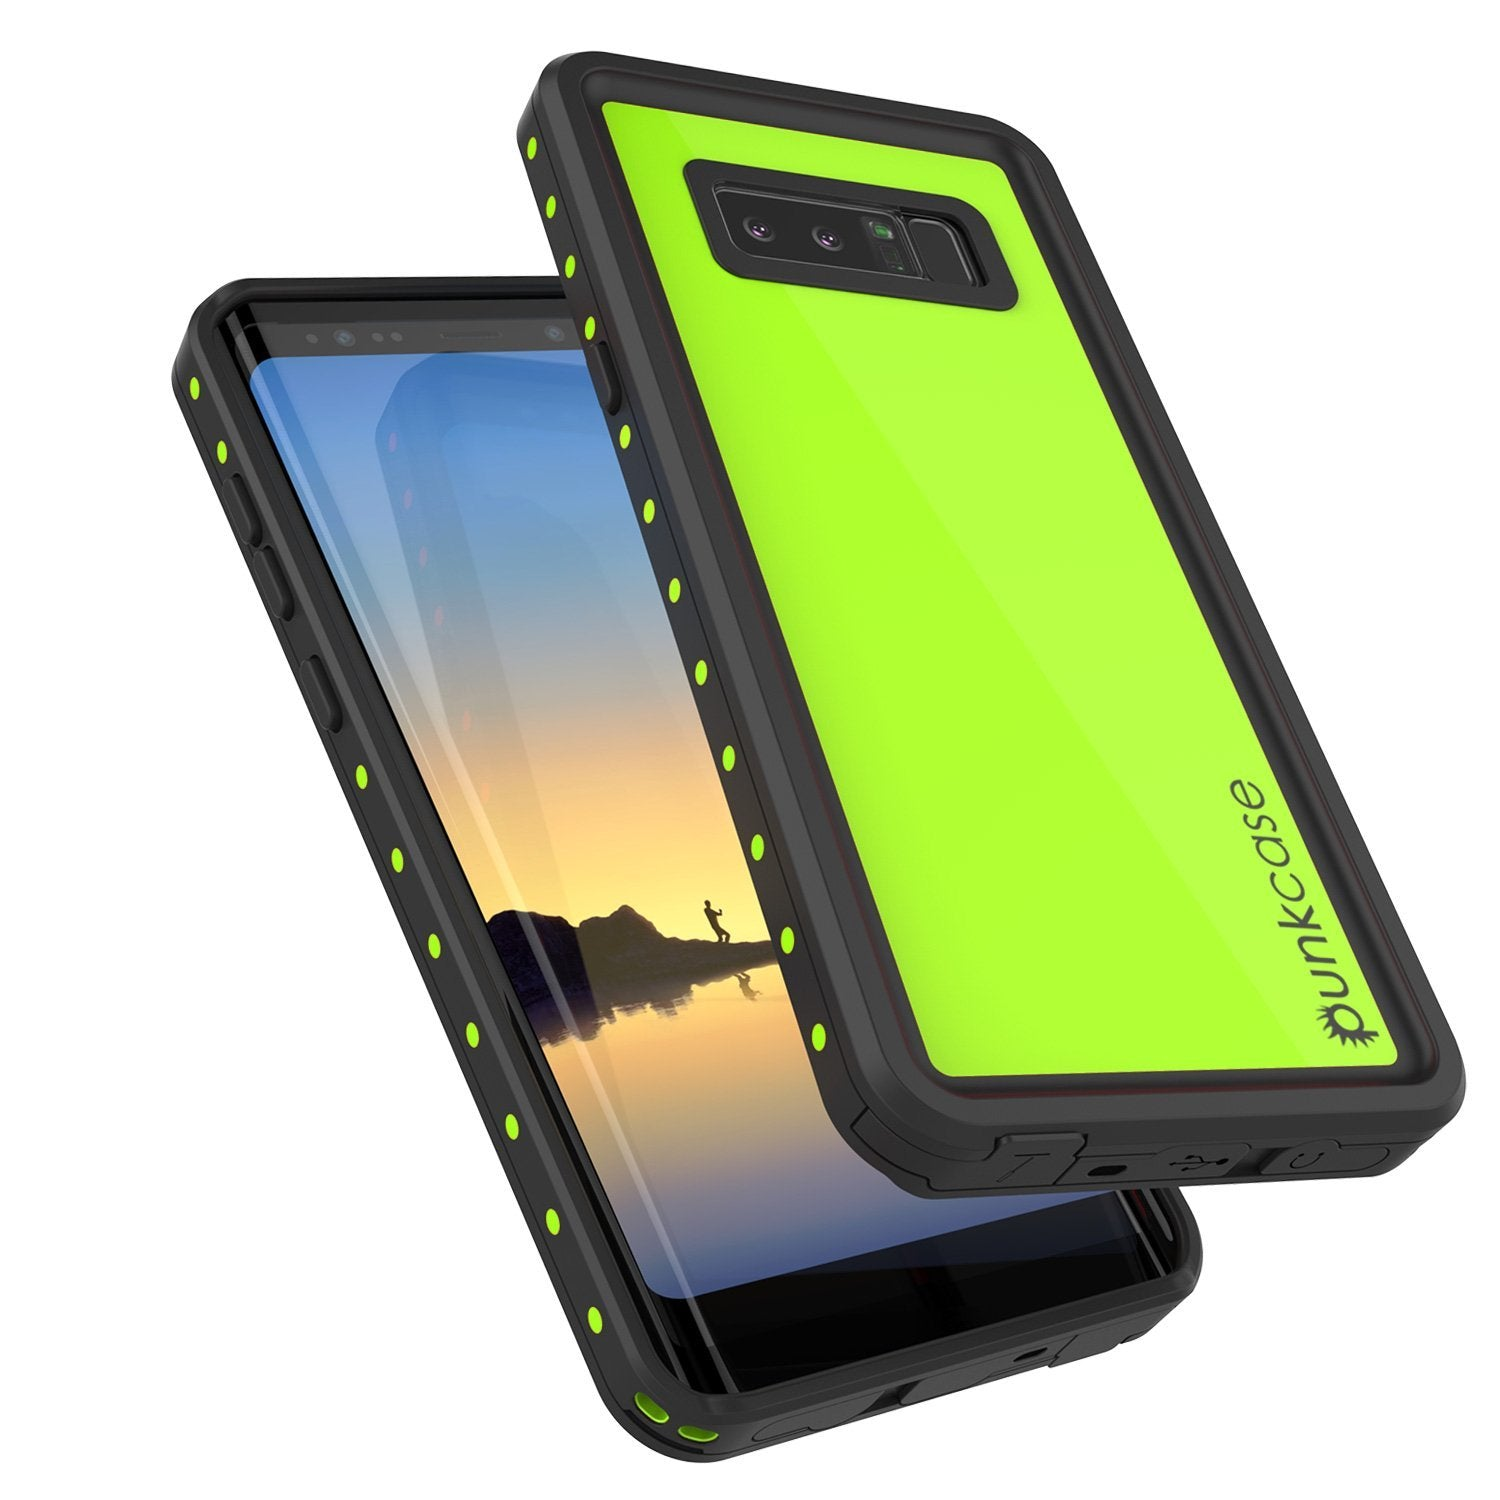 Galaxy Note 8 Waterproof Case PunkCase StudStar Light Green Thin 6.6ft Underwater IP68 ShockProof